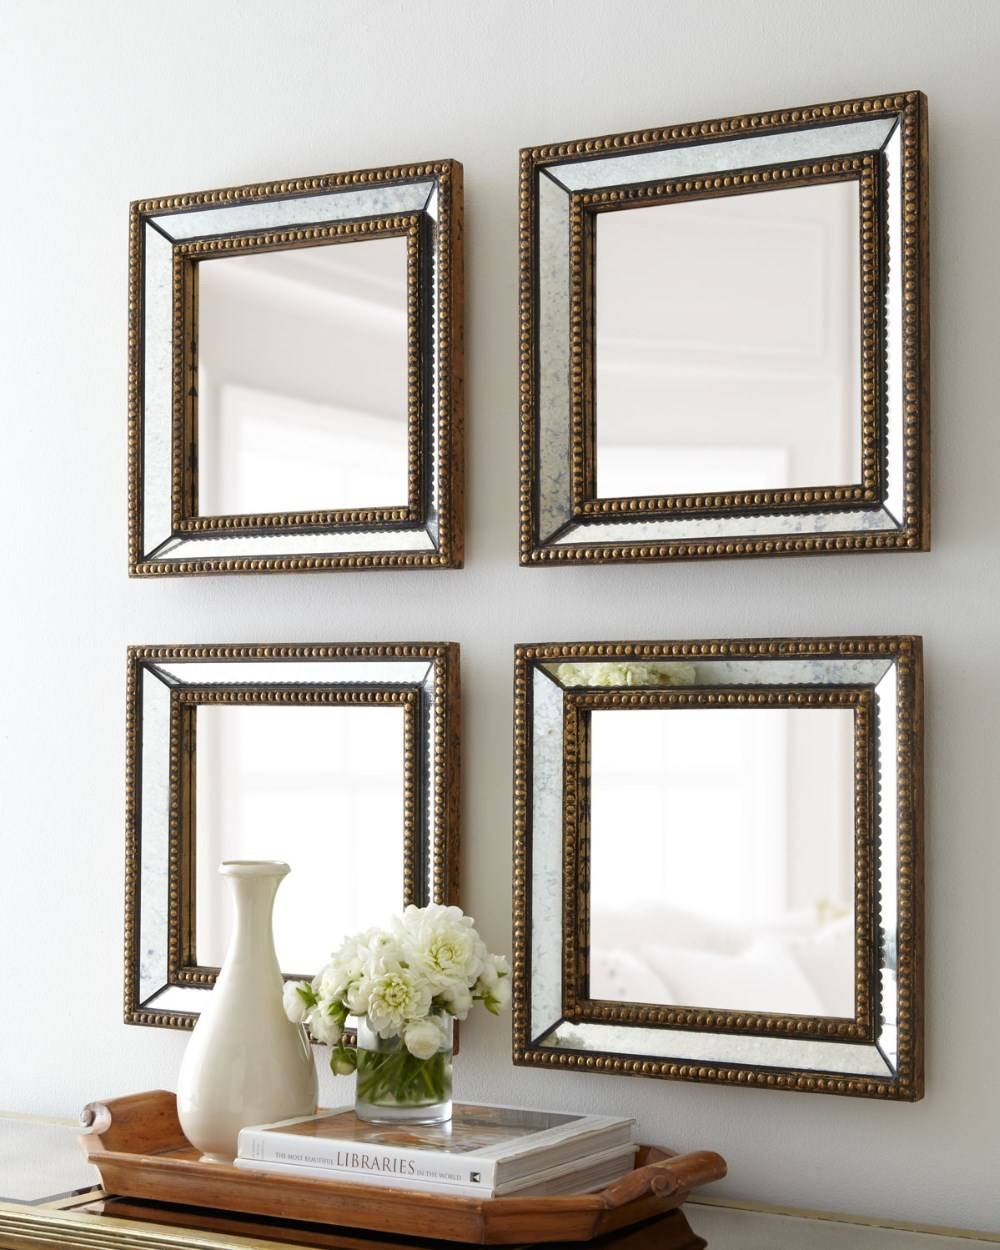 Alibaba Manufacturer Directory - Suppliers, Manufacturers for Square Wall Mirrors (Image 4 of 25)